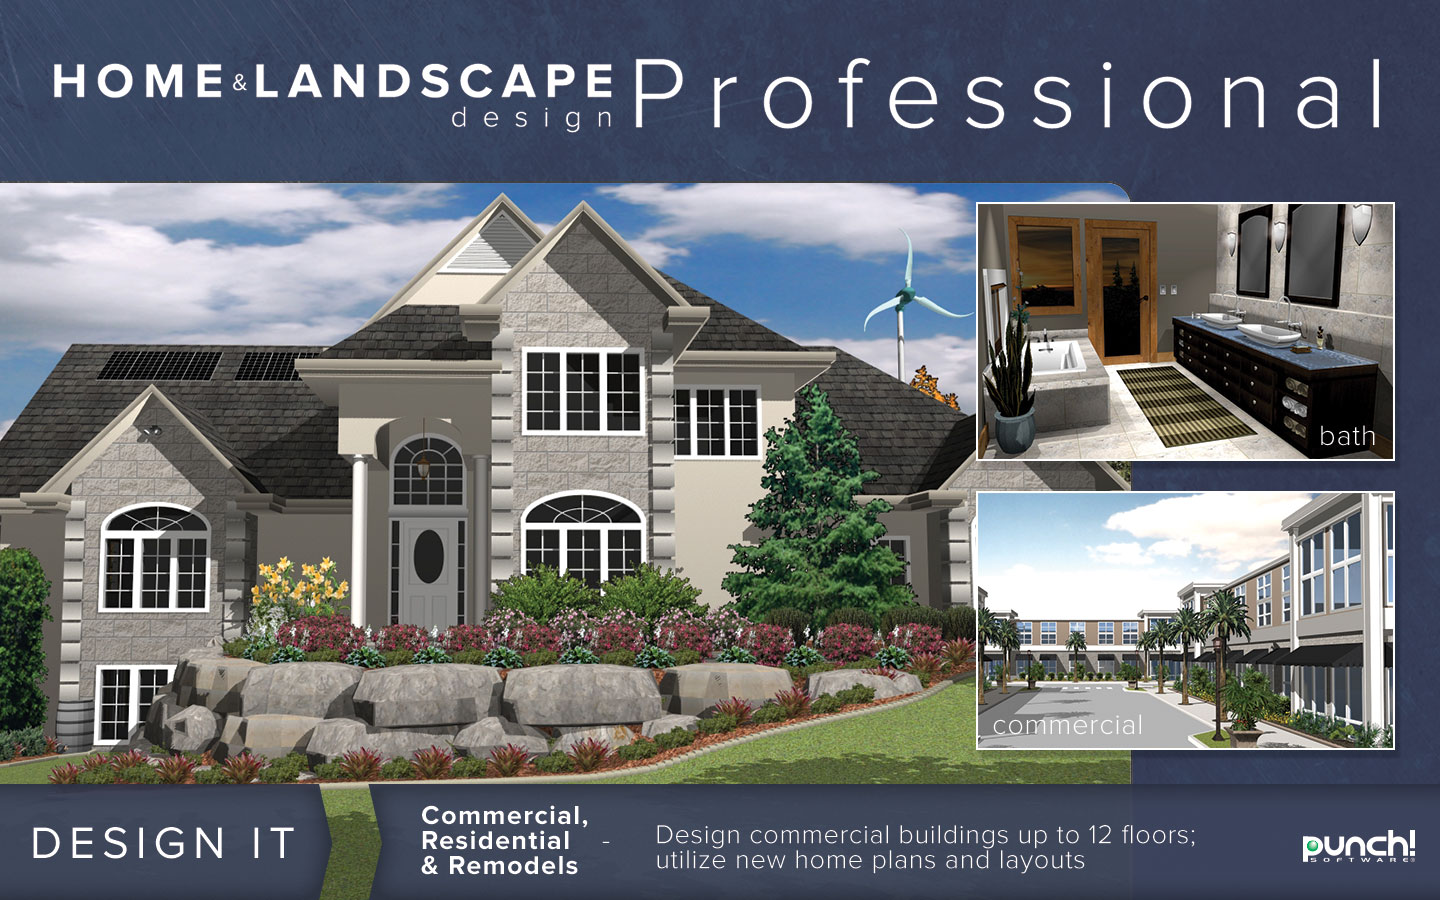 Punch! Home & Landscape Design Professional v18 | #1 Selling Logo ...